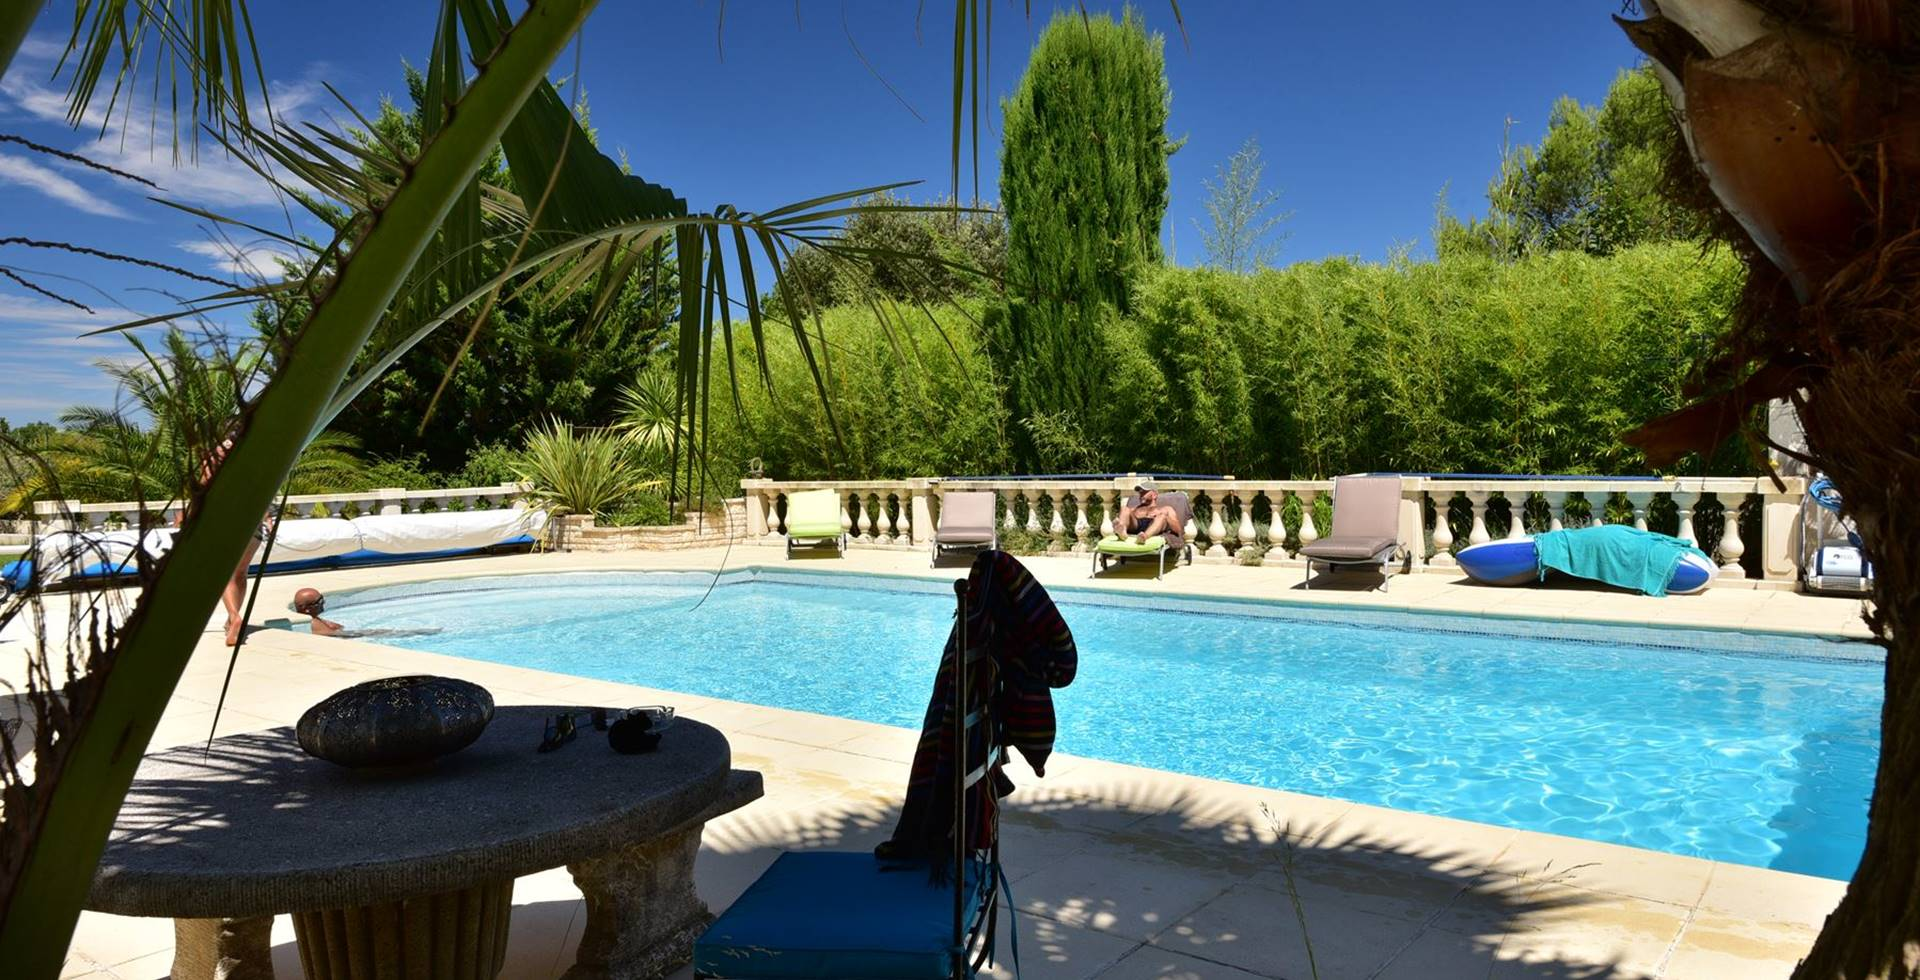 casadina-location-rent-gite-pool-sommieres